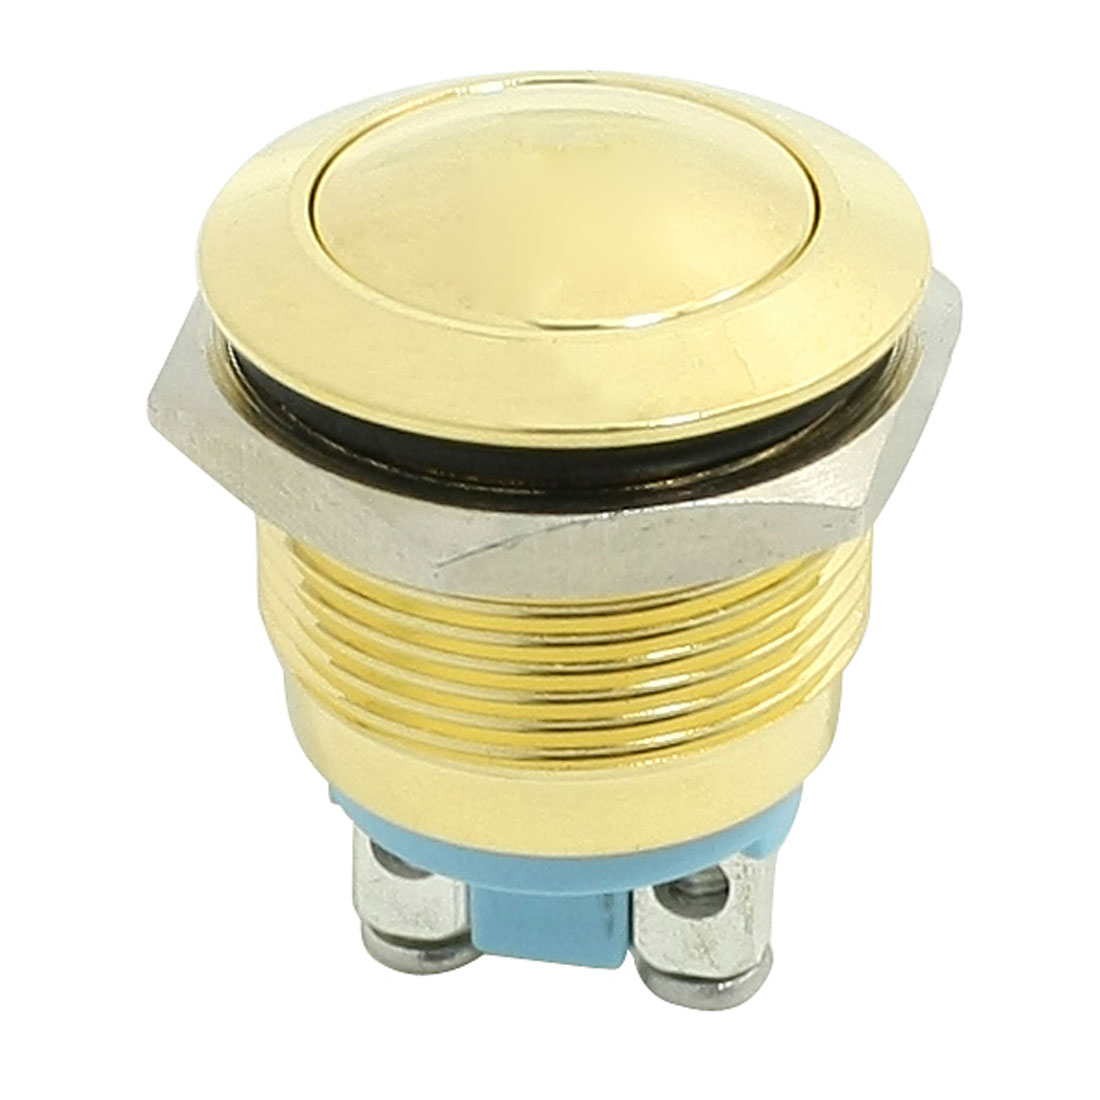 19mm 3A AC 250V Momentary Metal Power Push Button Switch 1NO Gold Tone